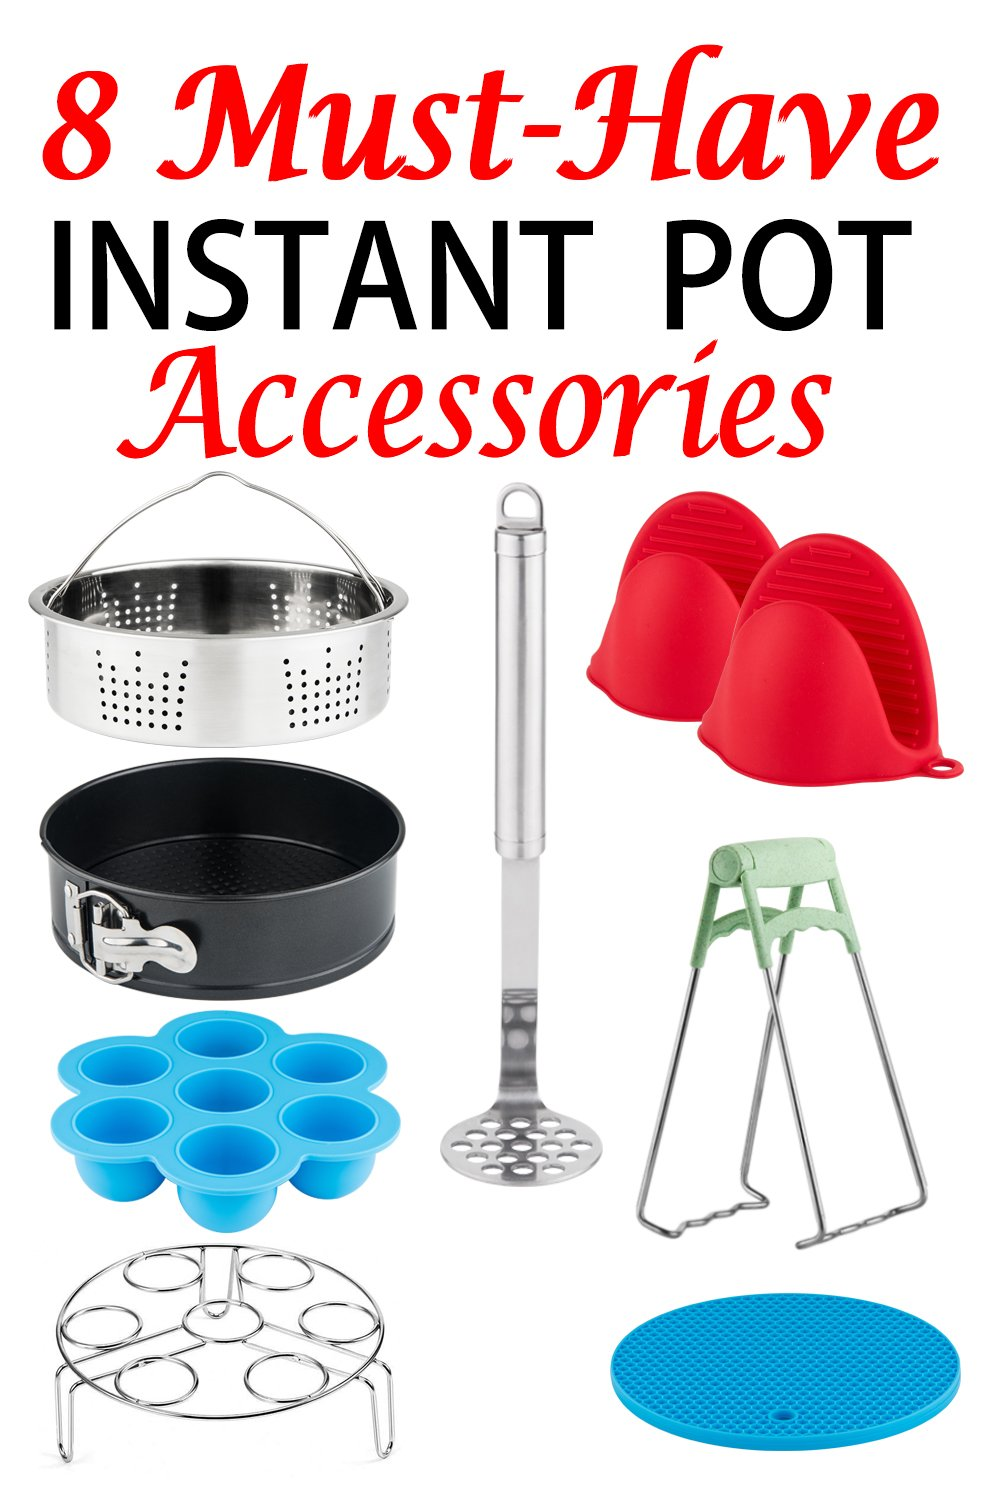 Instant Pot Accessories Set-Fits 5/6/8Qt Instant Pot Pressure Cooker, 8 Pcs Value Pack with Upgrade Steamer Basket/Egg Bites Mold/Egg Steamer Rack/7 Inch Non-Stick Springform Pan,Best Gift for Family